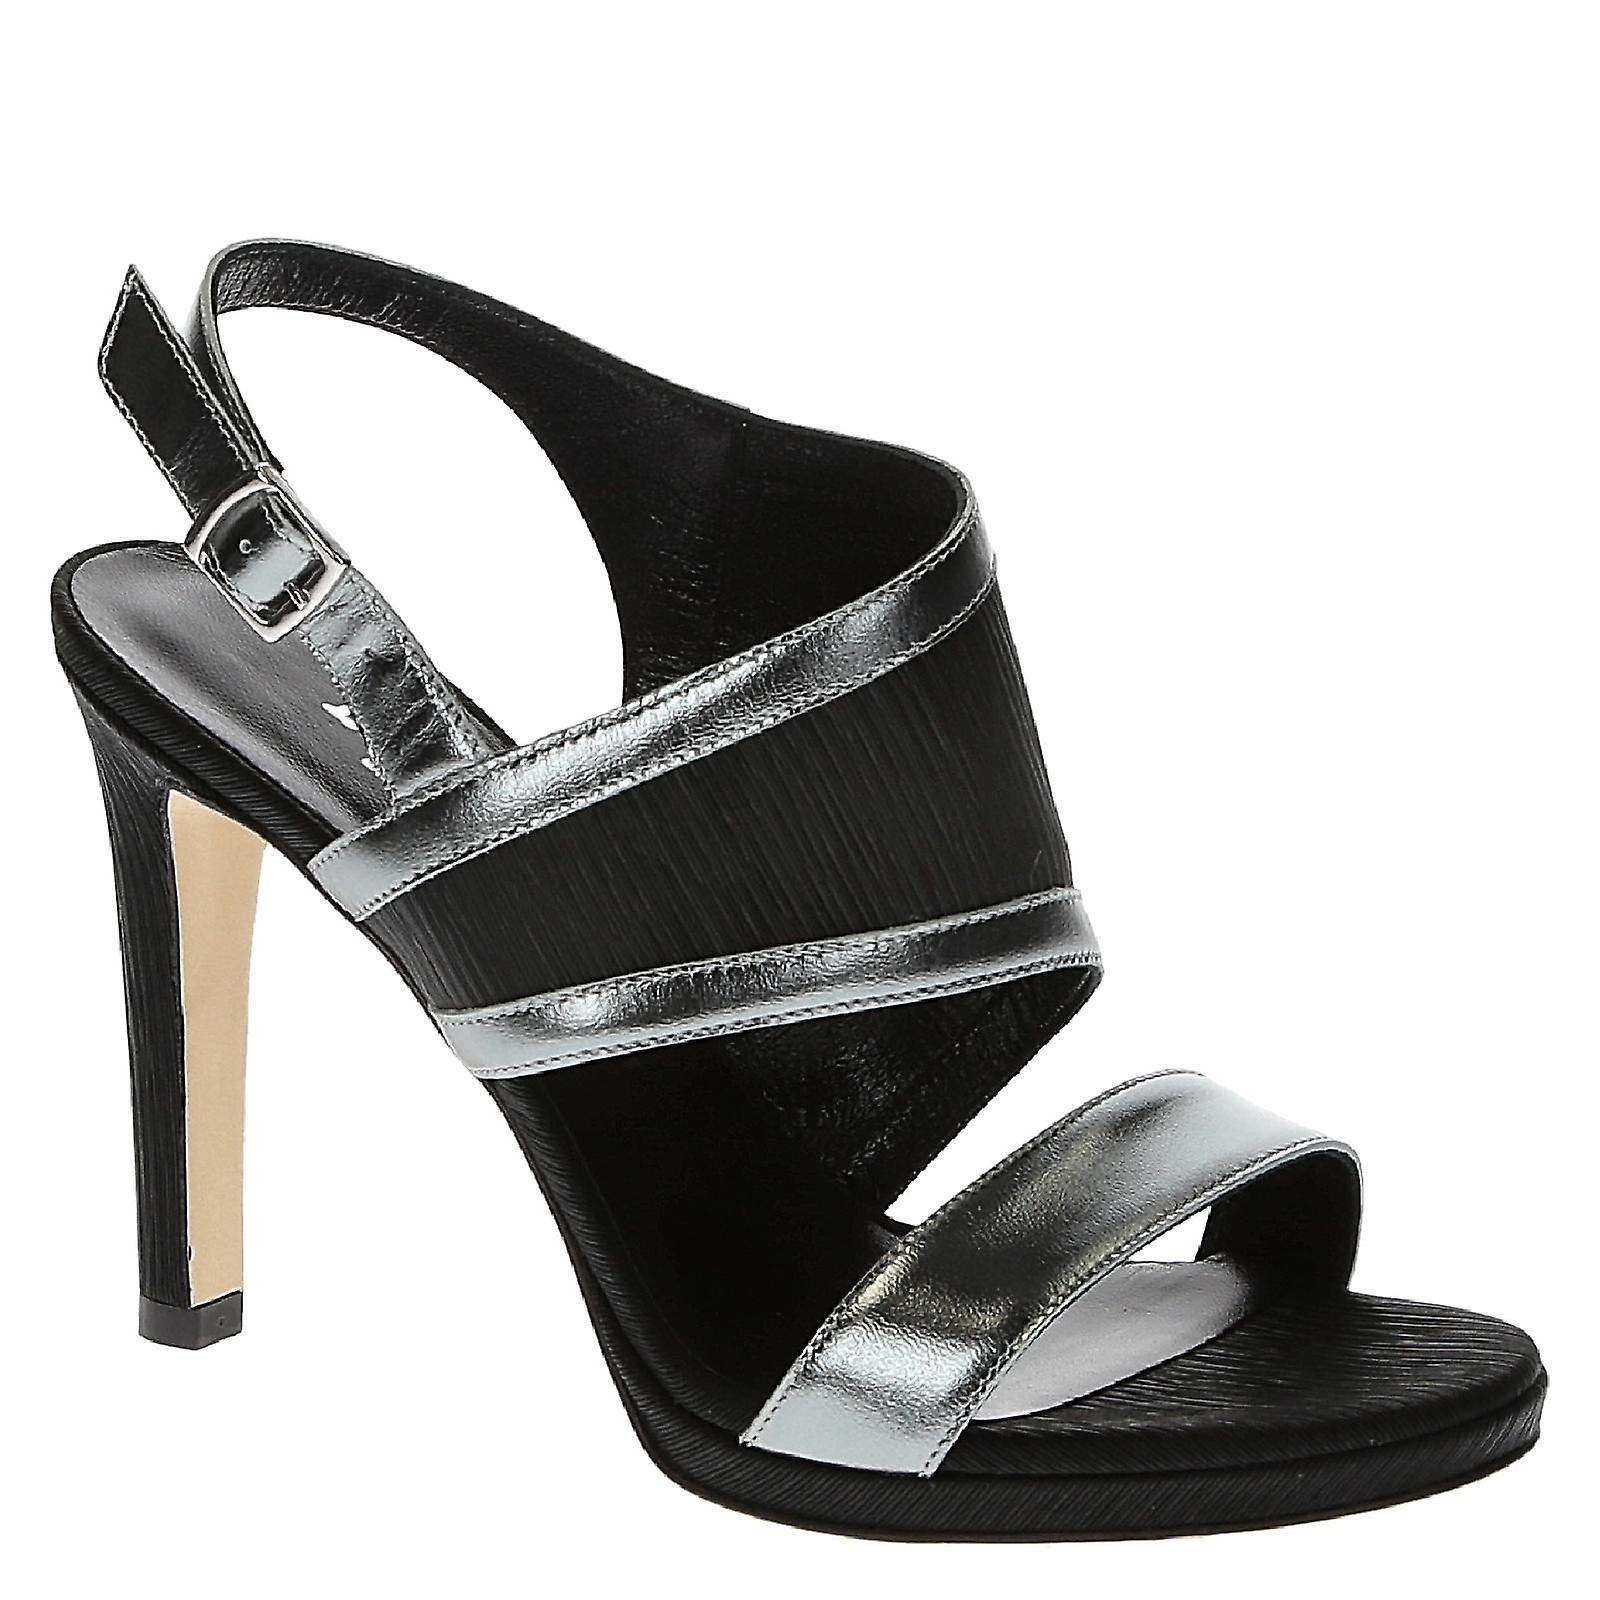 Handmade evening shoes in black satin and metallic leather Of5AB